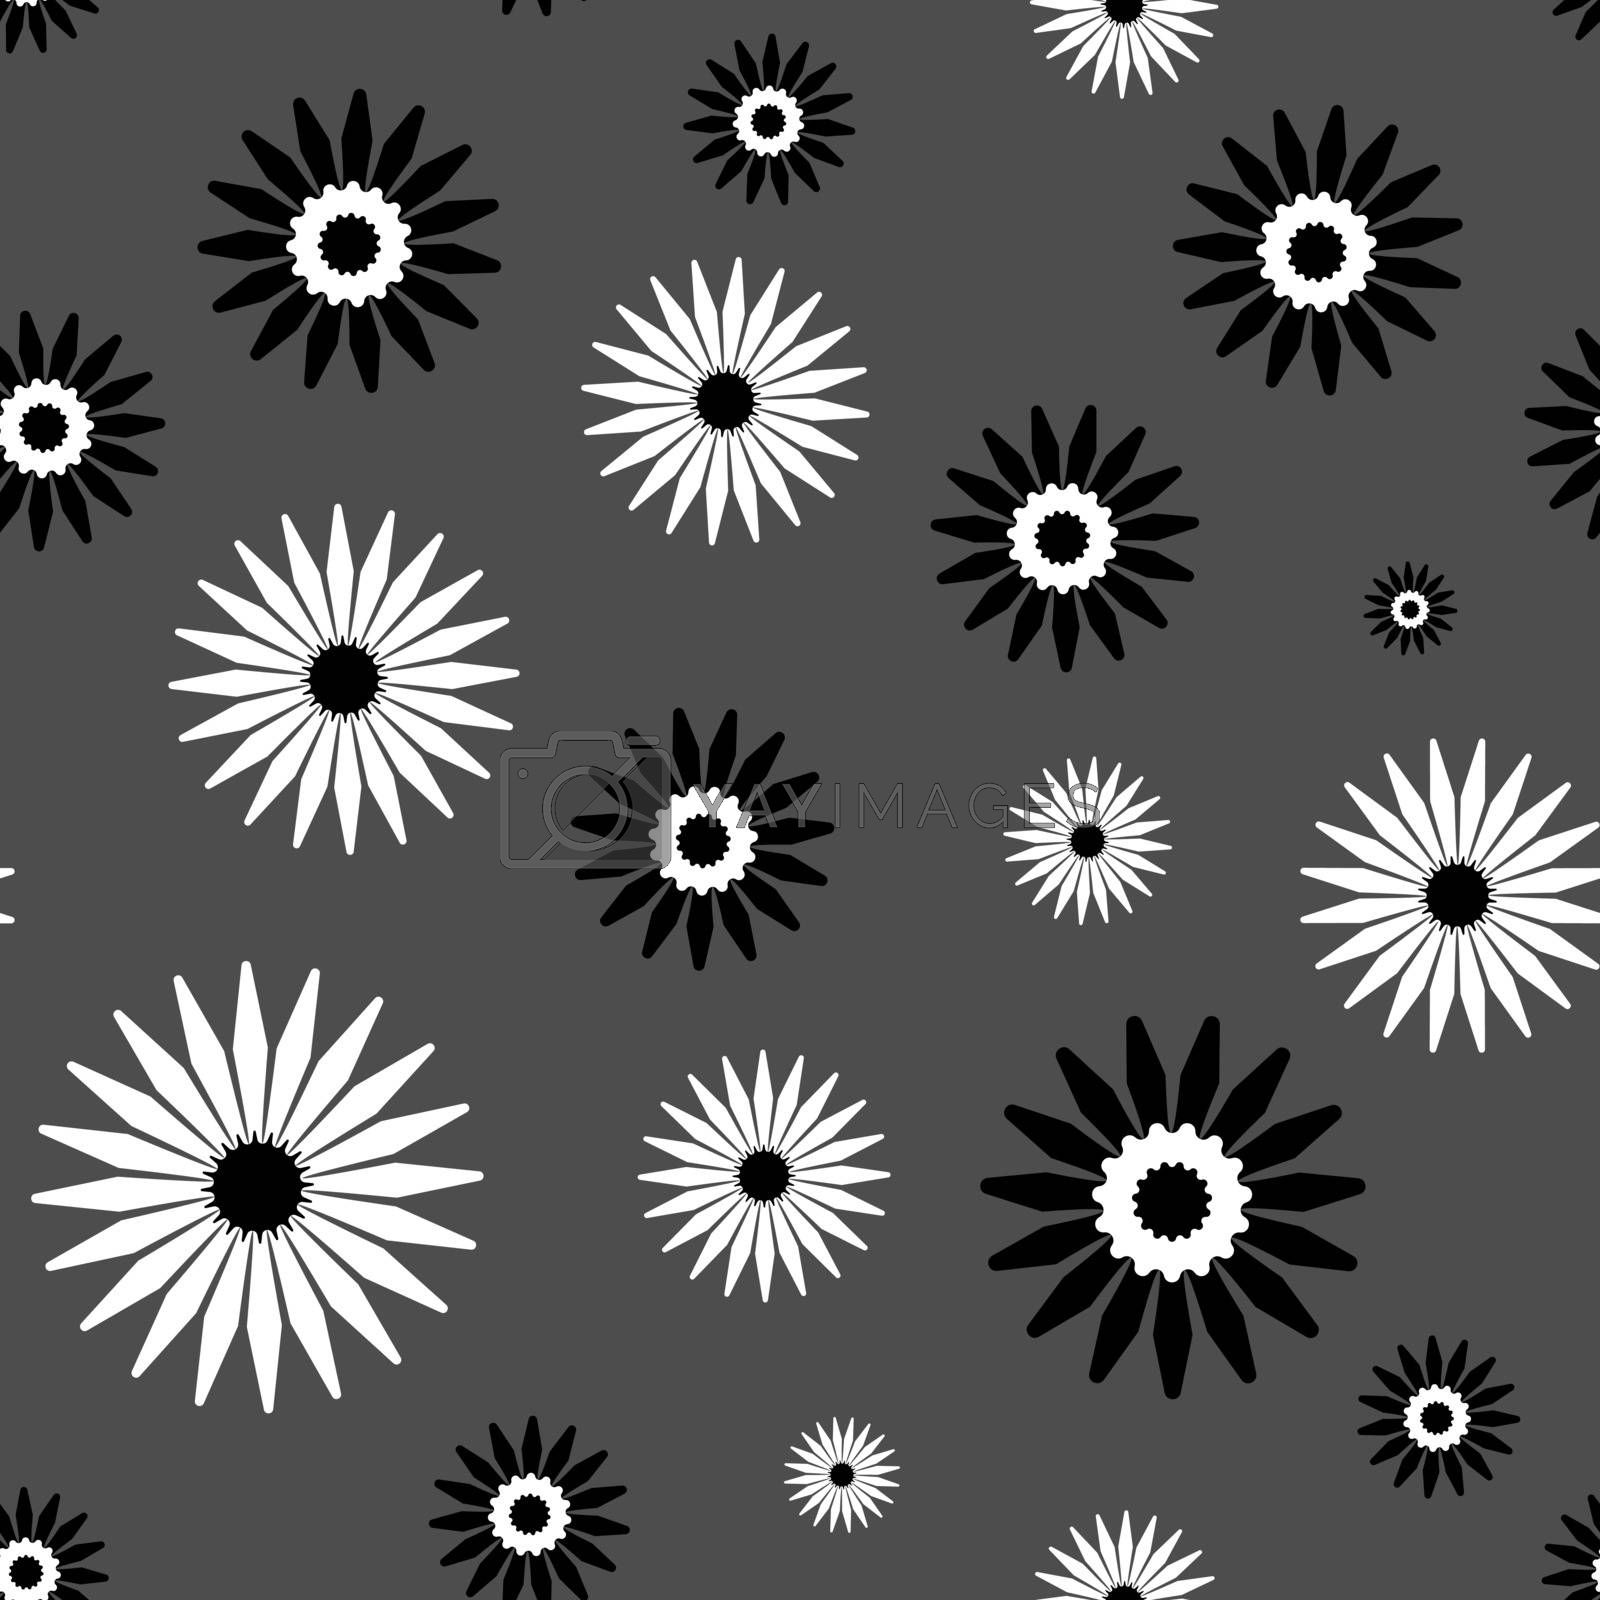 Cute abstract monochrome seamless pattern with simple black and white flowers on grey background